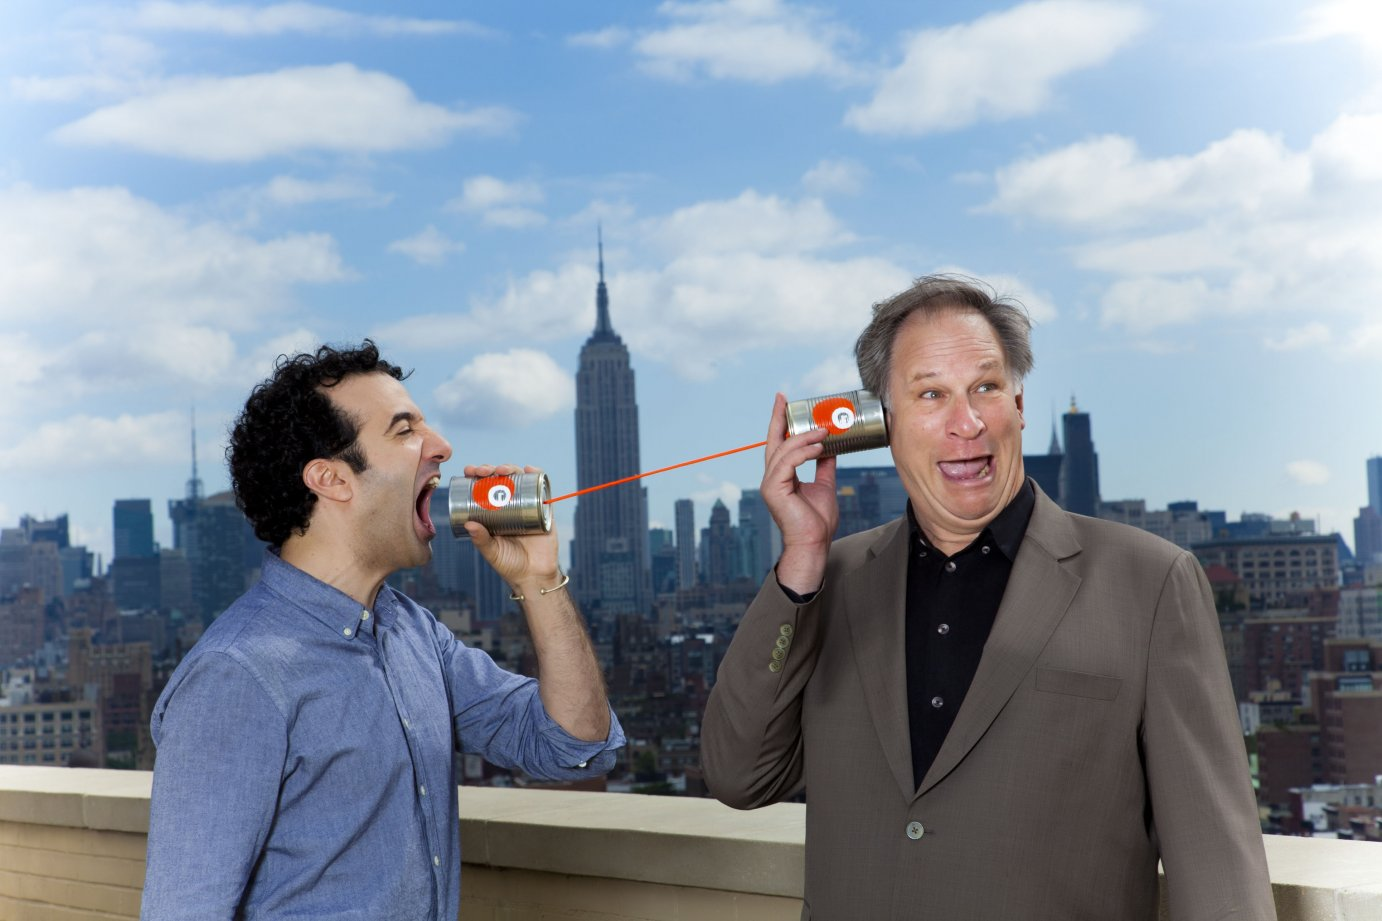 Radiolab, which airs on KPR2 at Noon on Saturdays, features hosts Jad Abumrad (left) and Robert Krulwich. (Photo Credit: MarcoAntonio.com)